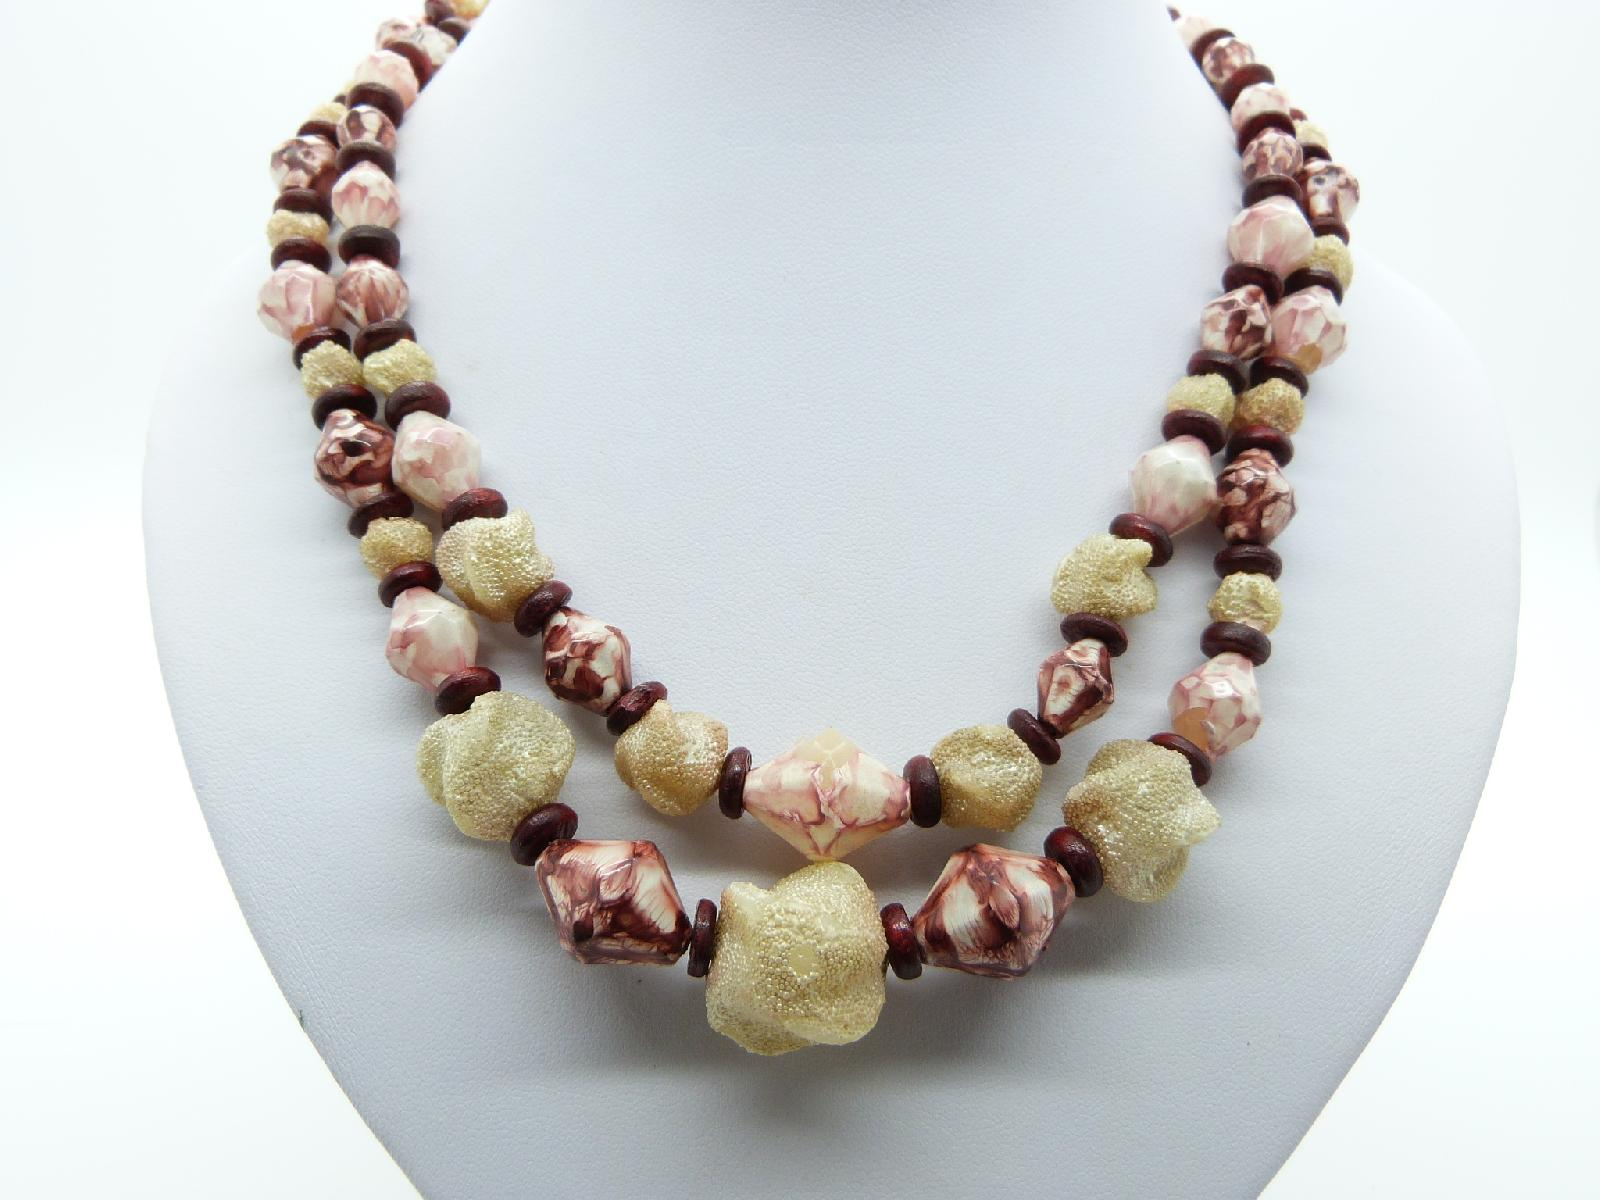 £10.00 - Vintage 50s Two Row Cream and Maroon Lucite Plastic Textured Bead Necklace